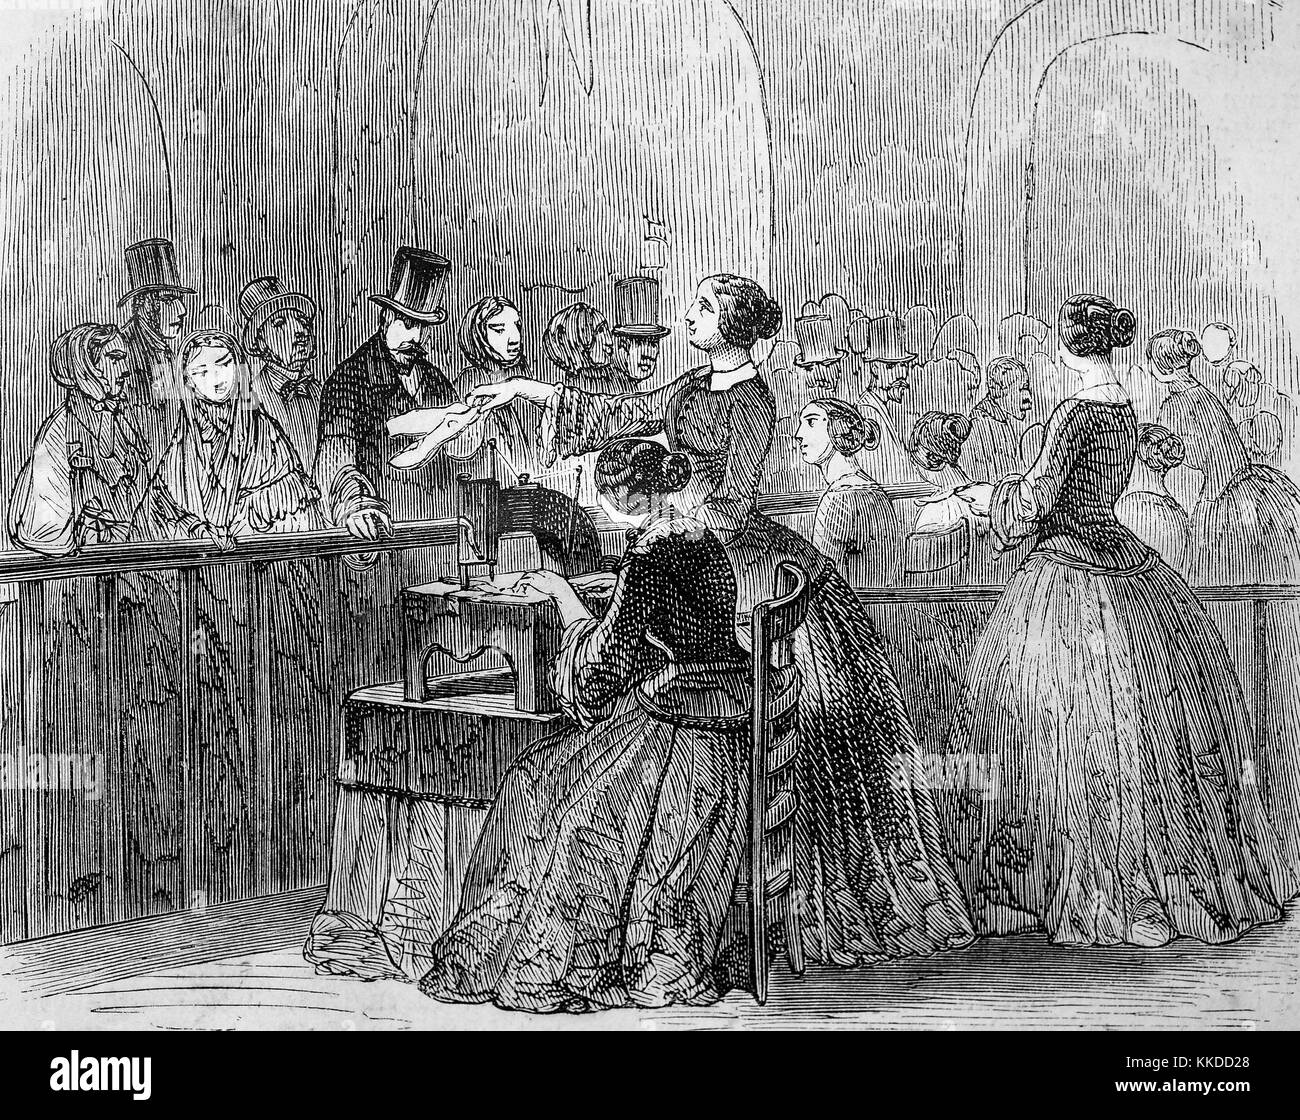 One woman sews on the sewing machine, another serves the waiting customers, pictures of the time of 1855, Digital - Stock Image